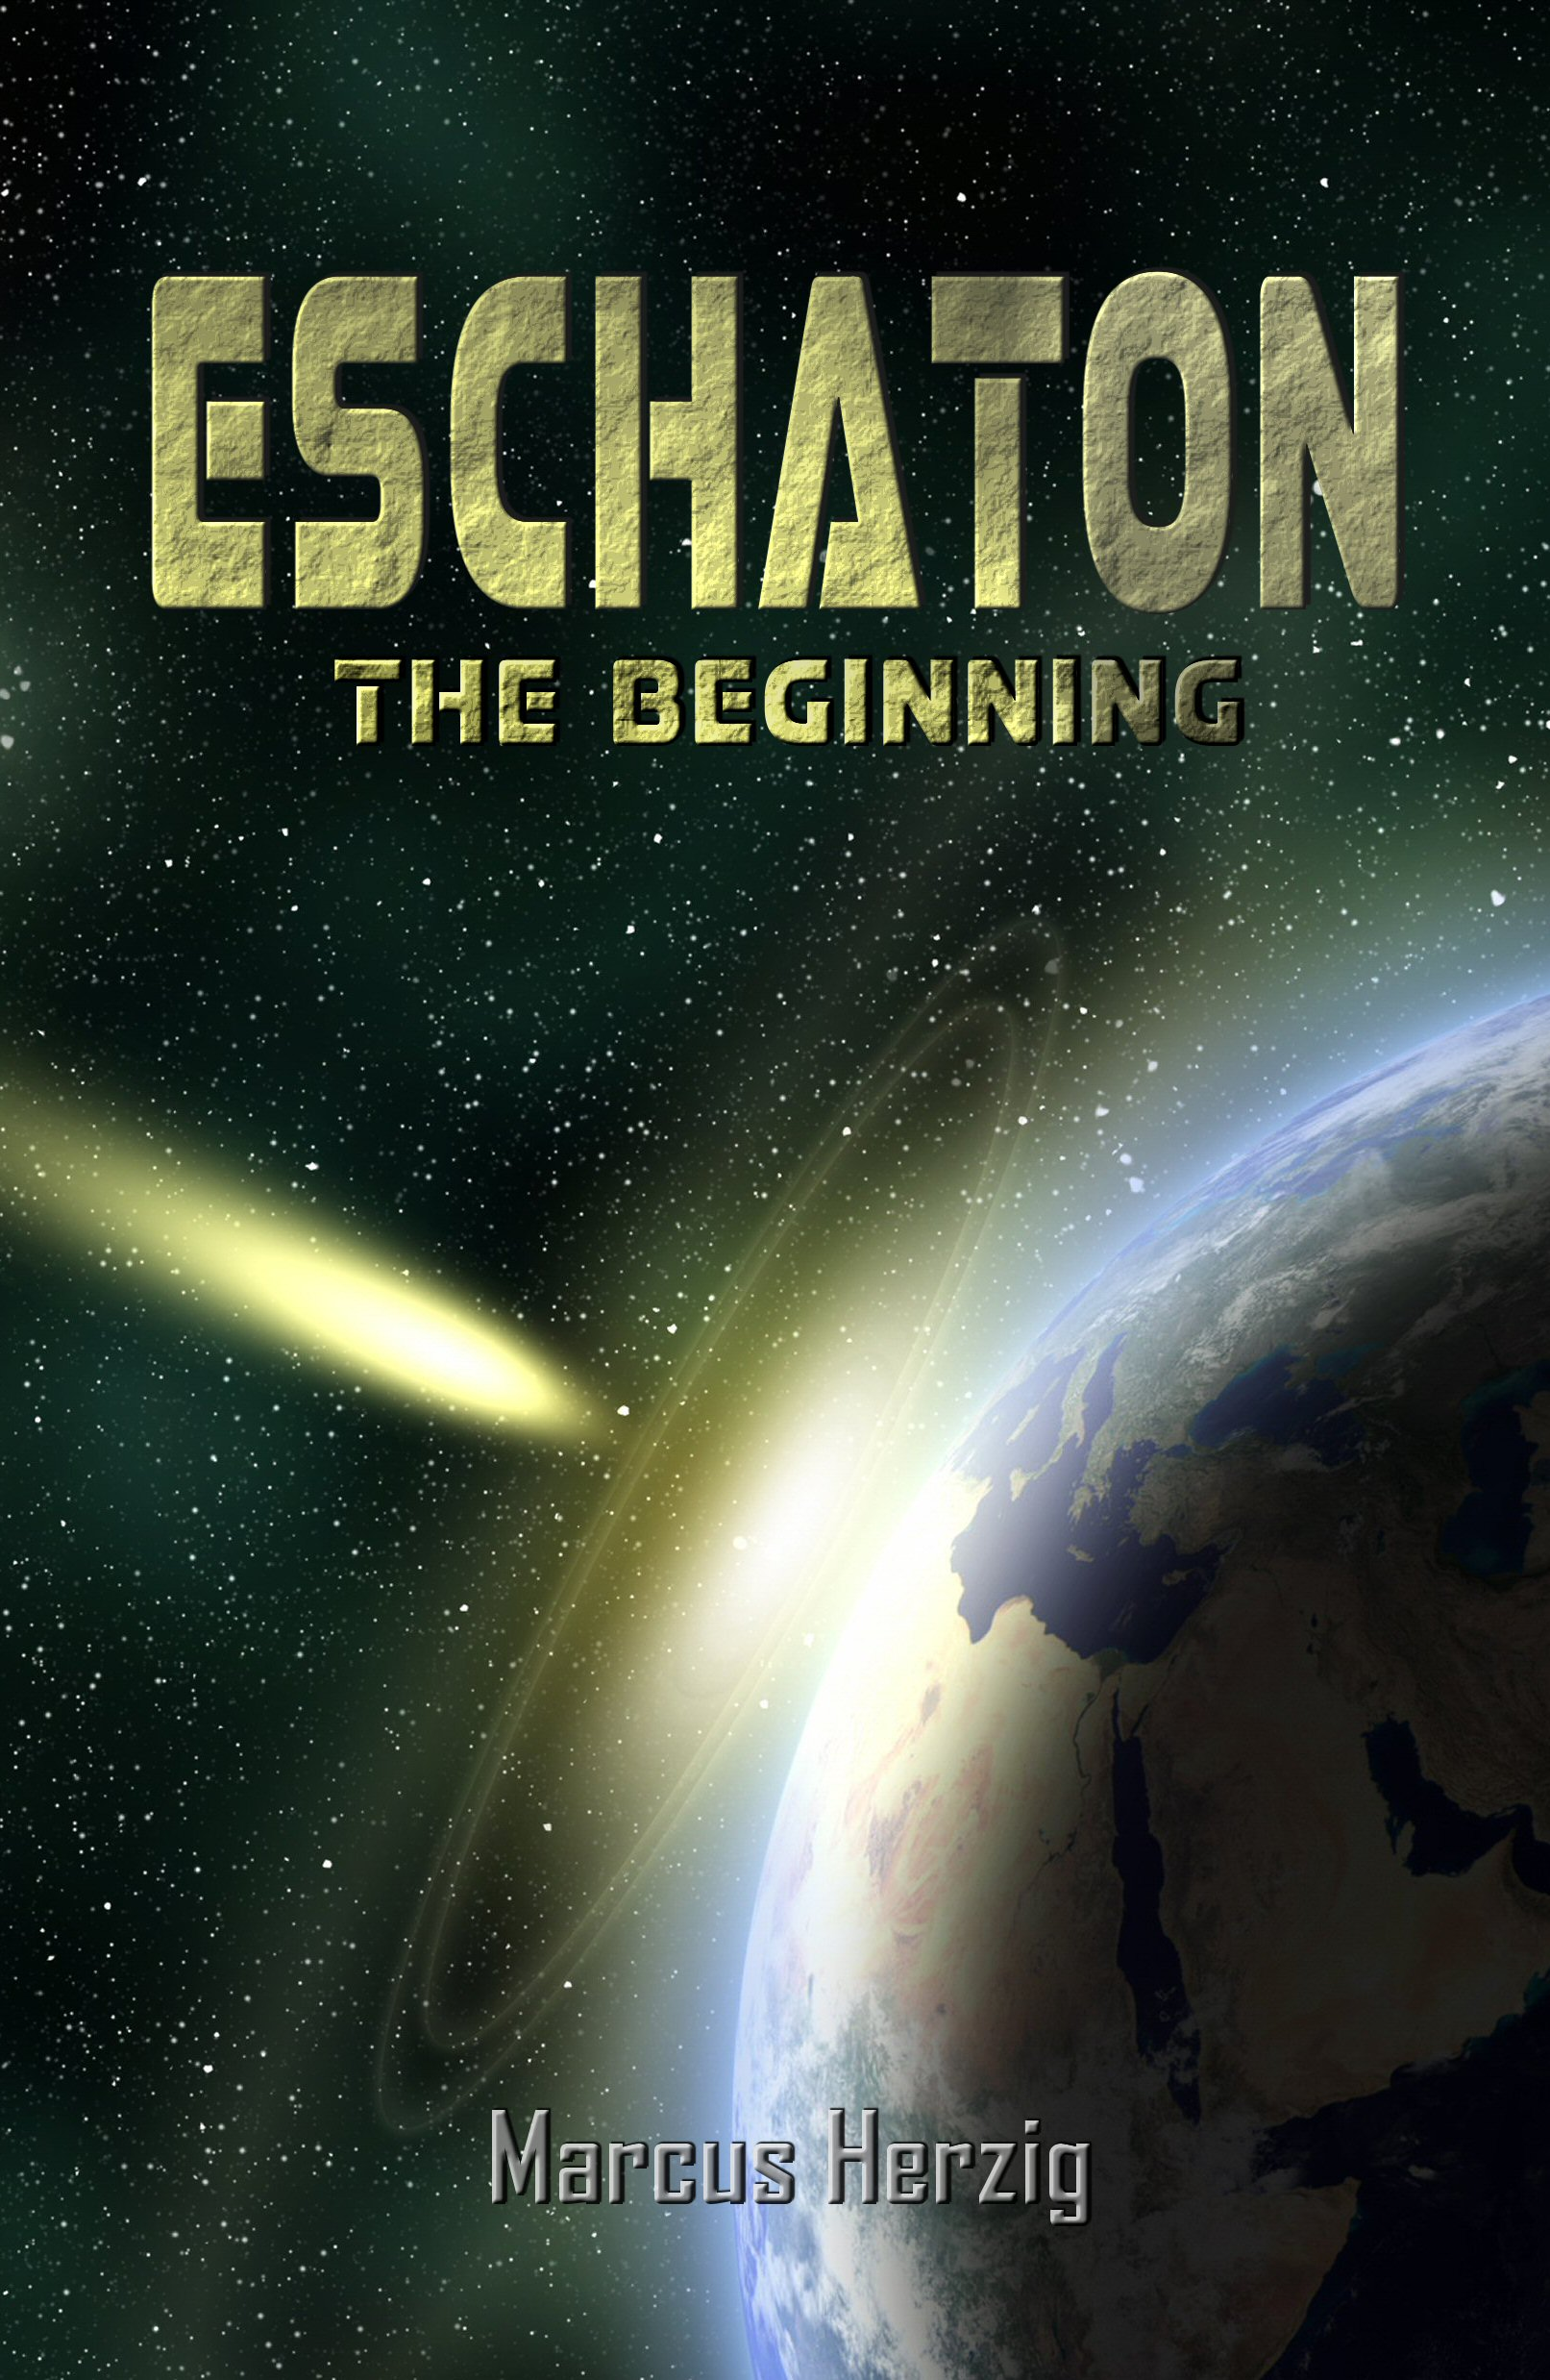 Eschaton – The Beginning